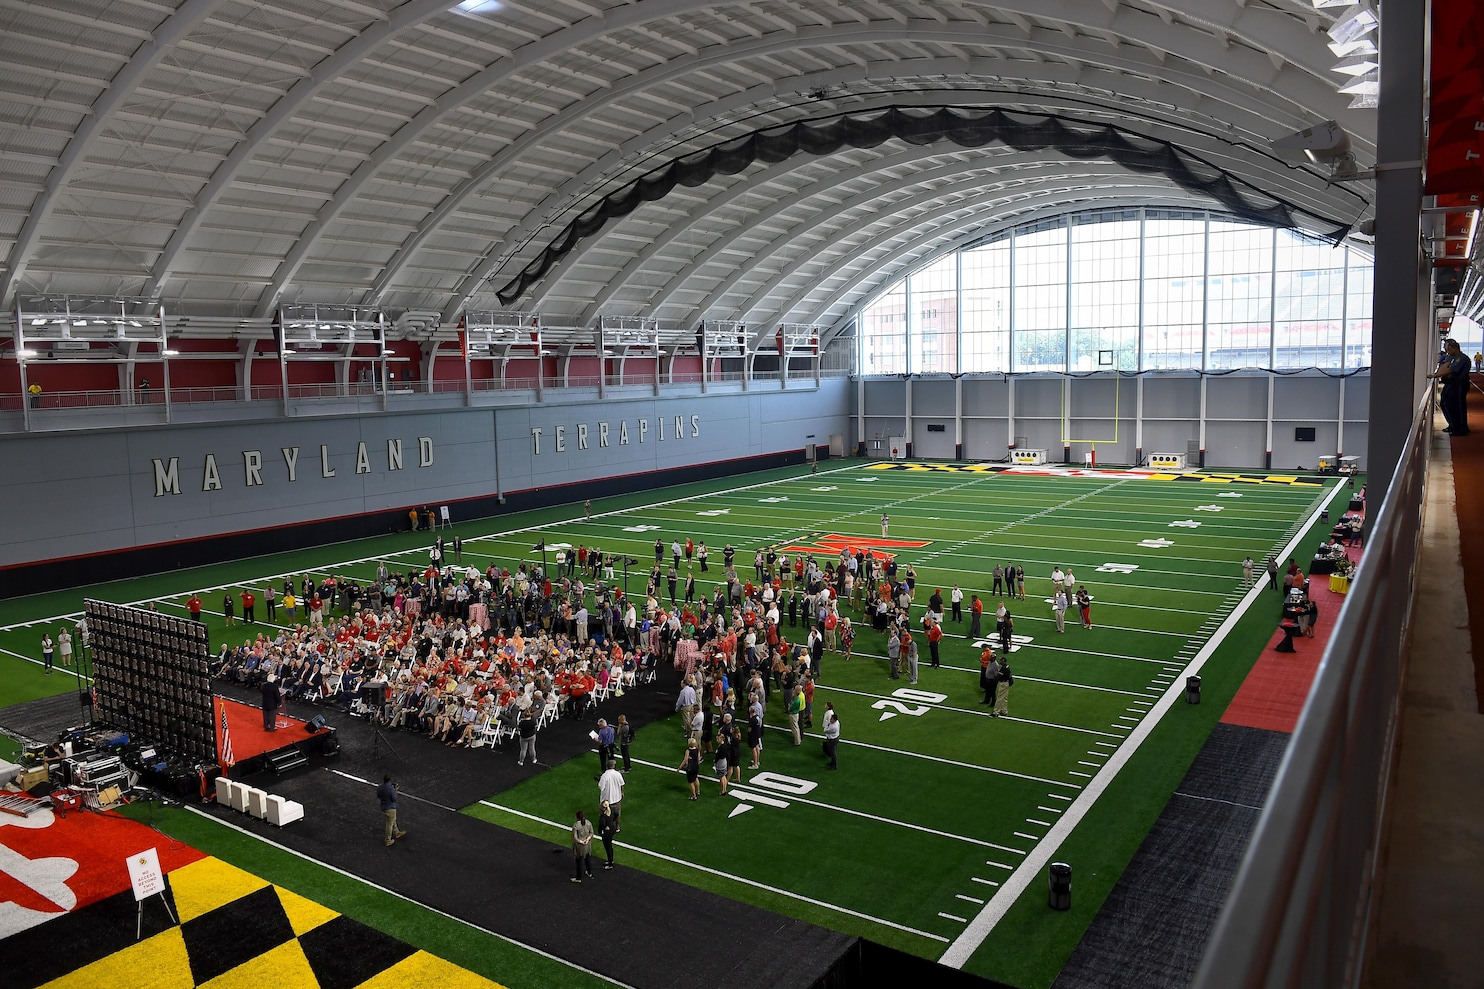 Old Maryland Unveils Gleaming New Football Practice Field Washington Post Maryland Unveils Gleaming New Football Practice Field Cole Field House College Park Md Cole Field House Address curbed Cole Field House